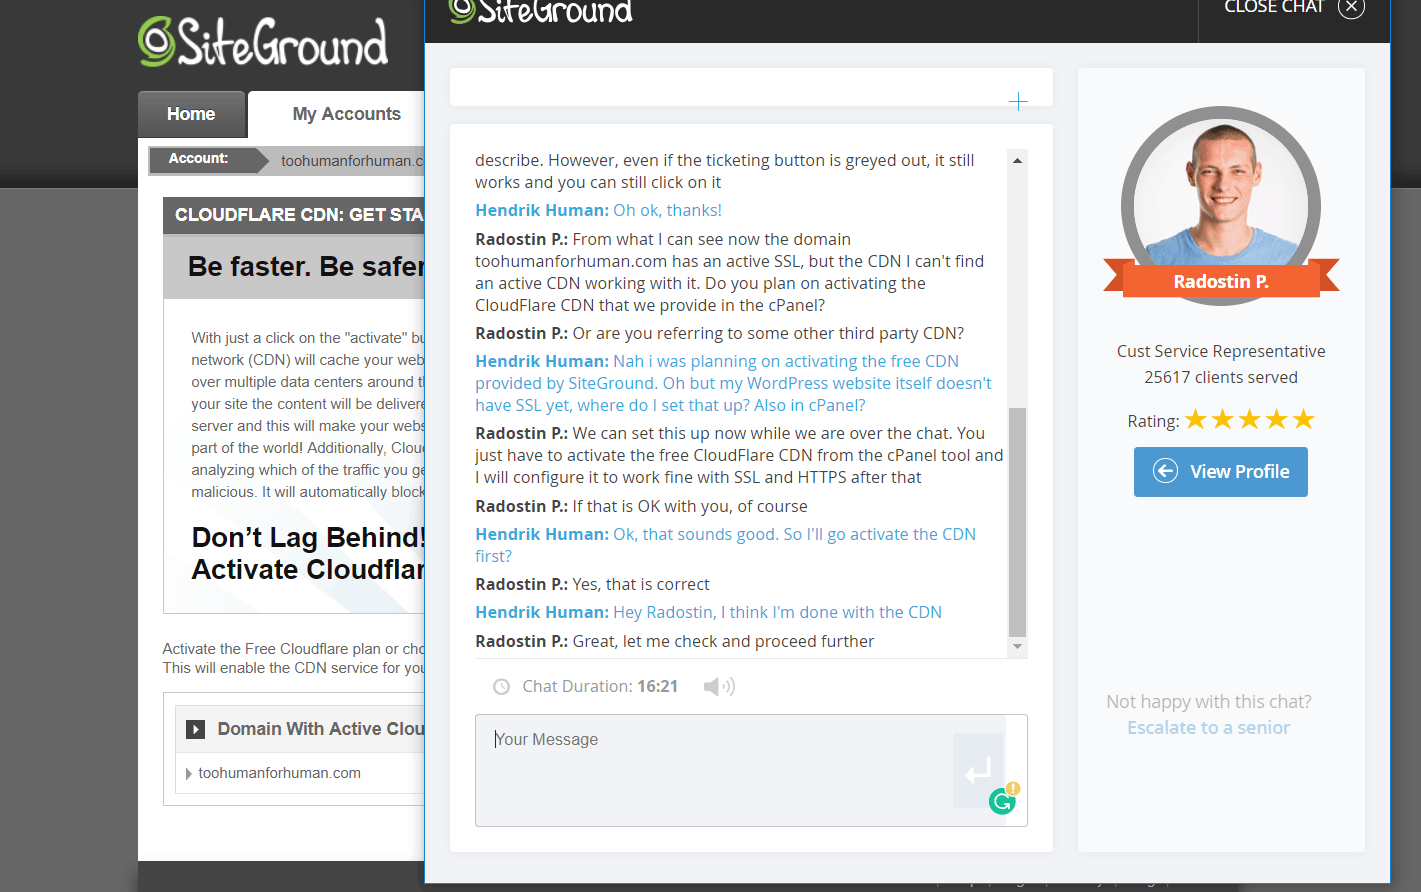 Chat SiteGround Support